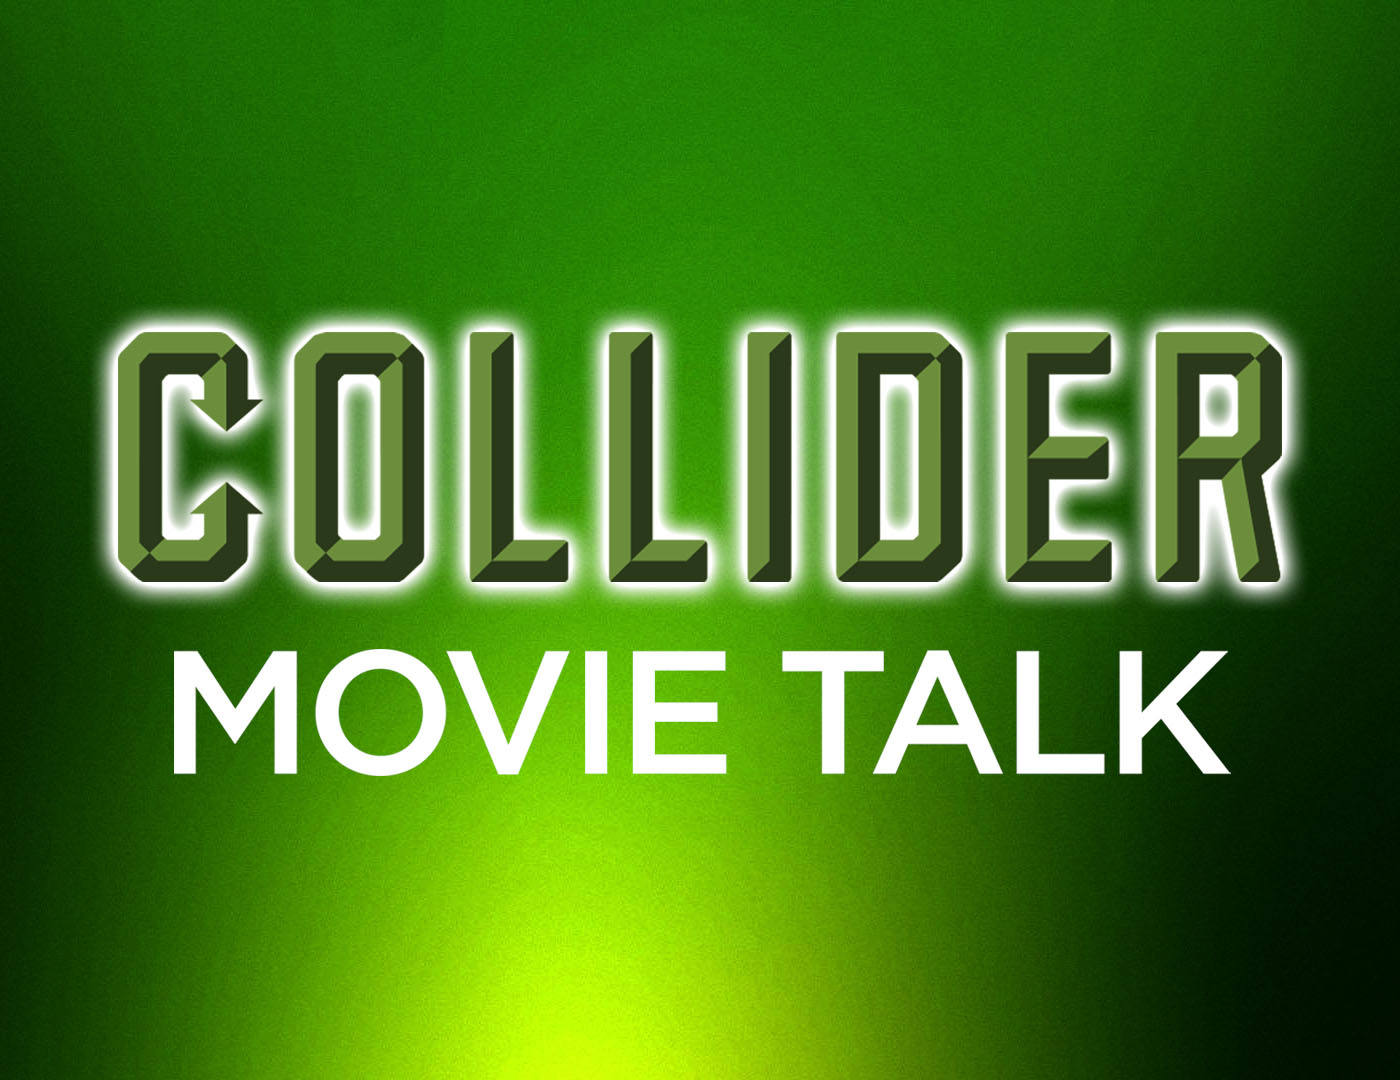 Collider Movie Talk - Peter Jackson just Winged It With The Hobbit, Hunger Games Review